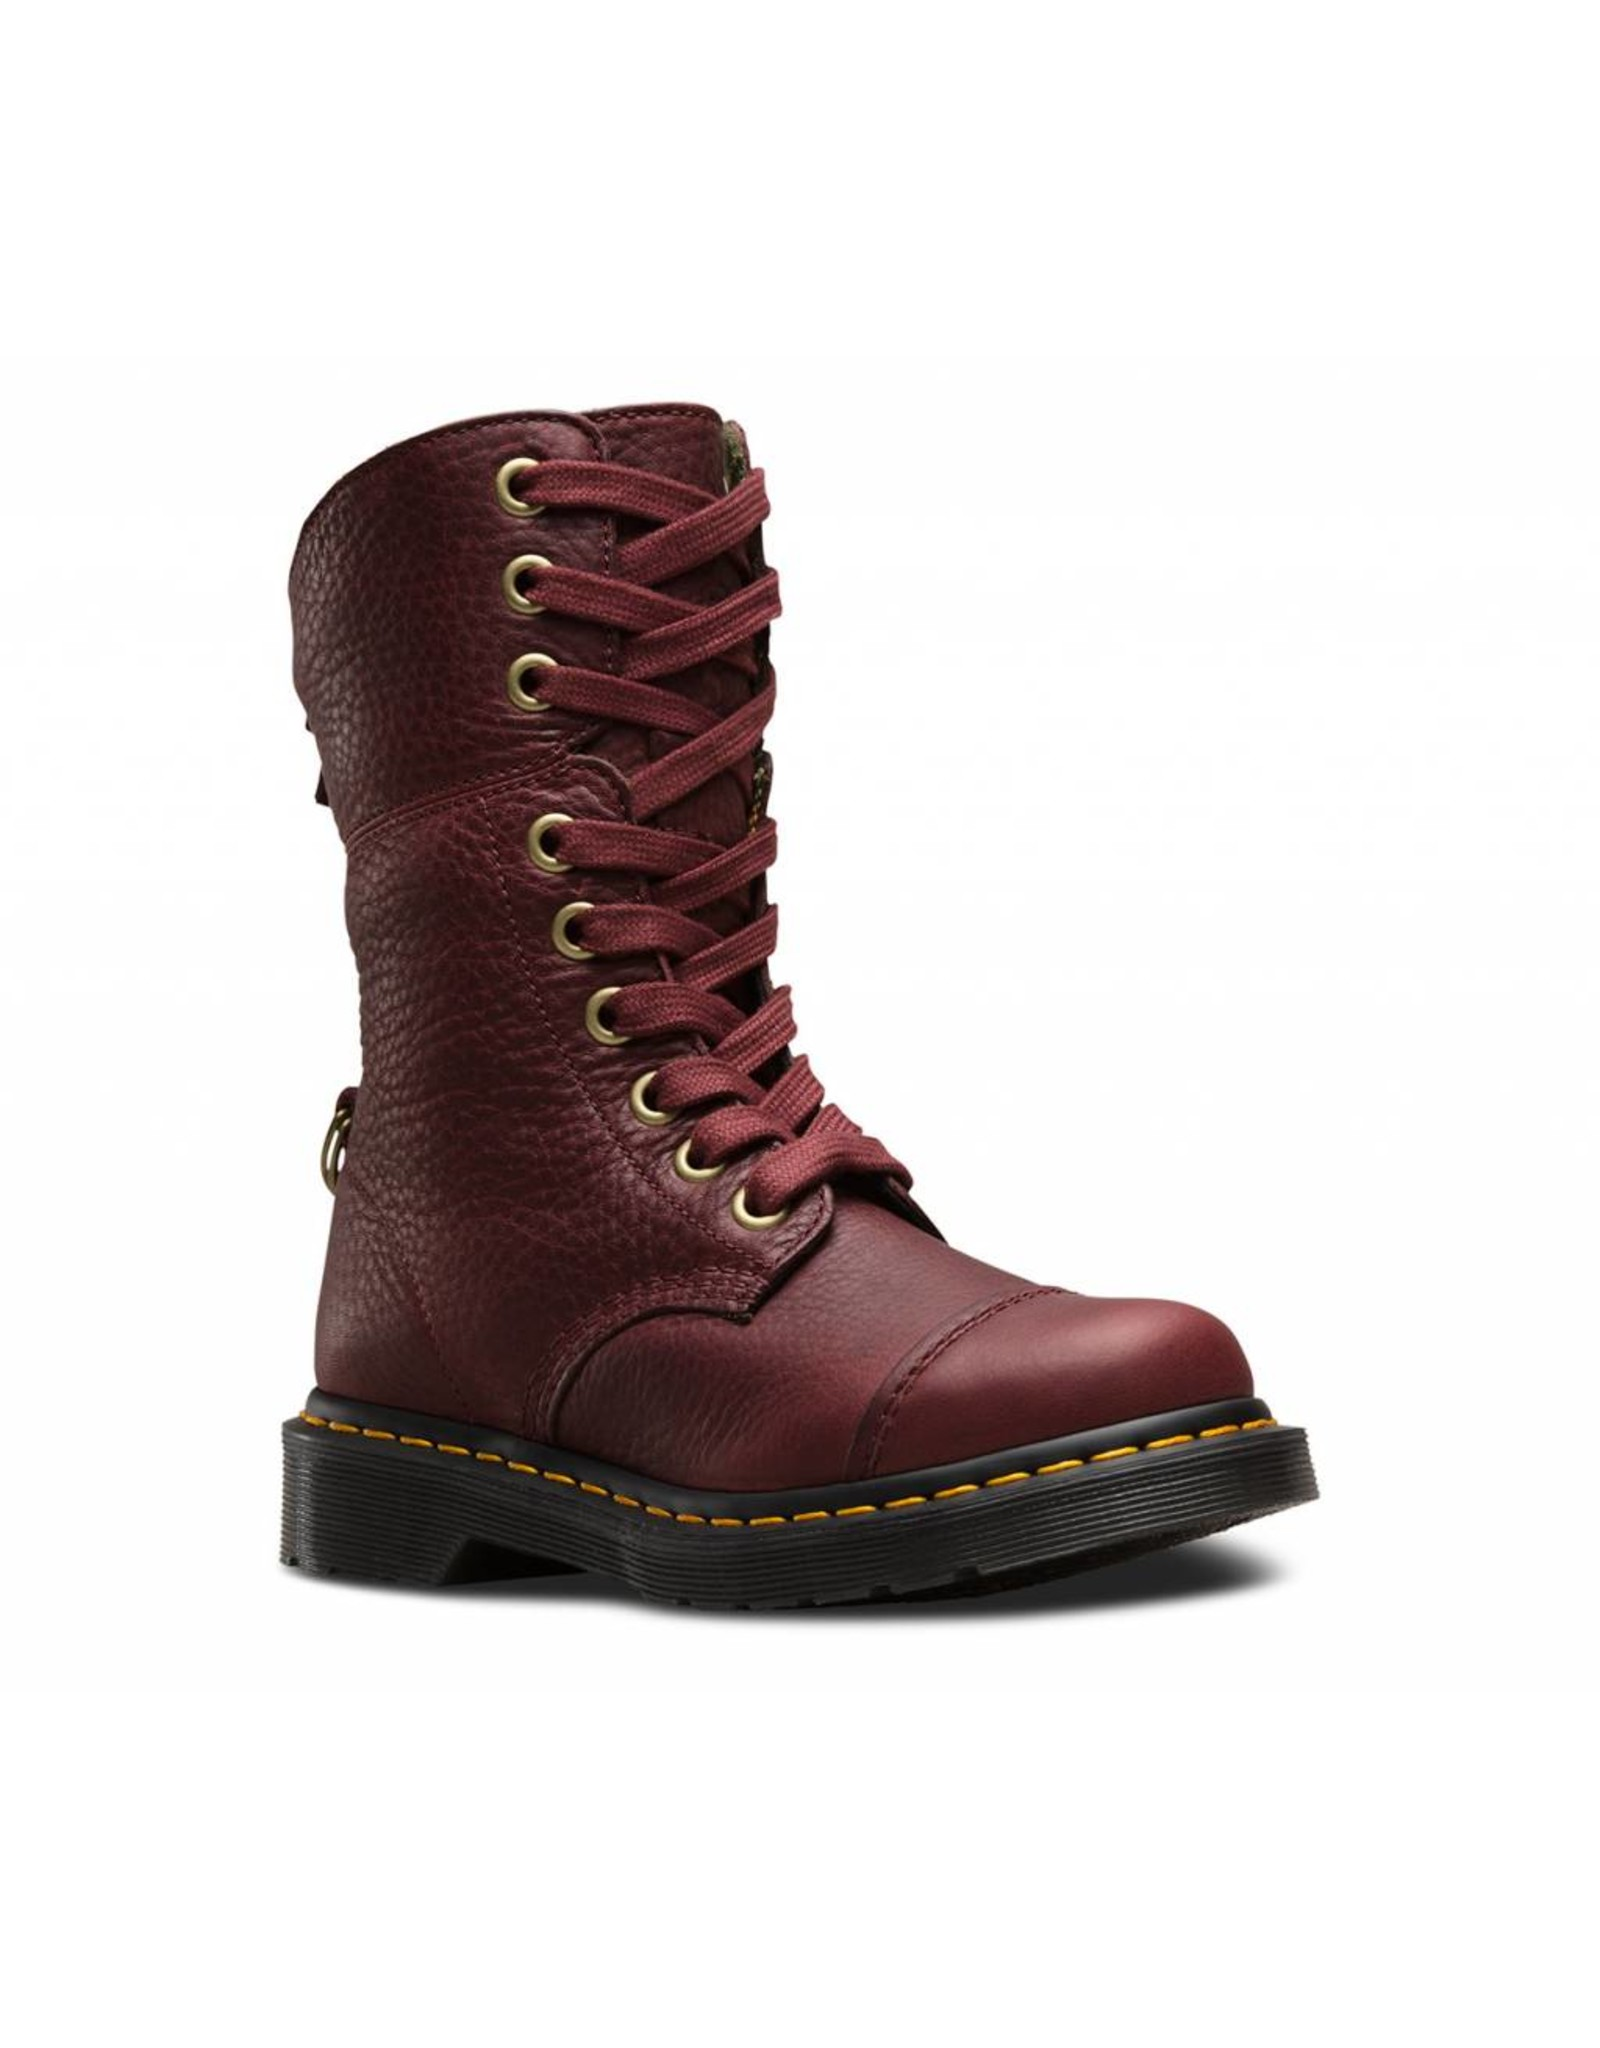 DR. MARTENS AIMILITA CHERRY RED GRIZZLY 901CRTA-R23185600